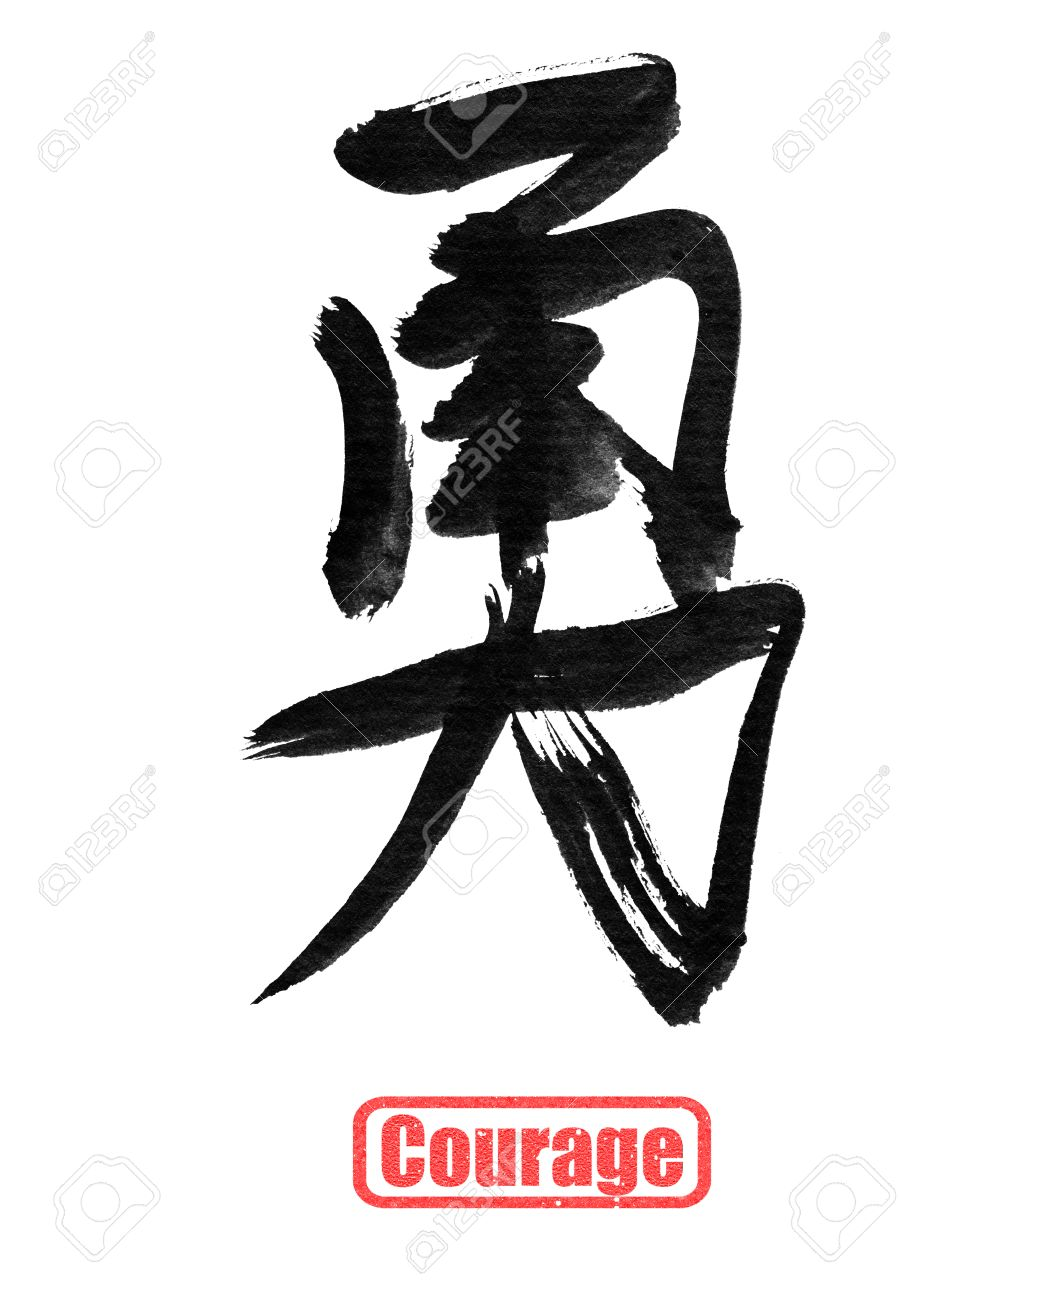 Courage traditional chinese calligraphy art isolated on white courage traditional chinese calligraphy art isolated on white background stock photo 29972156 biocorpaavc Image collections